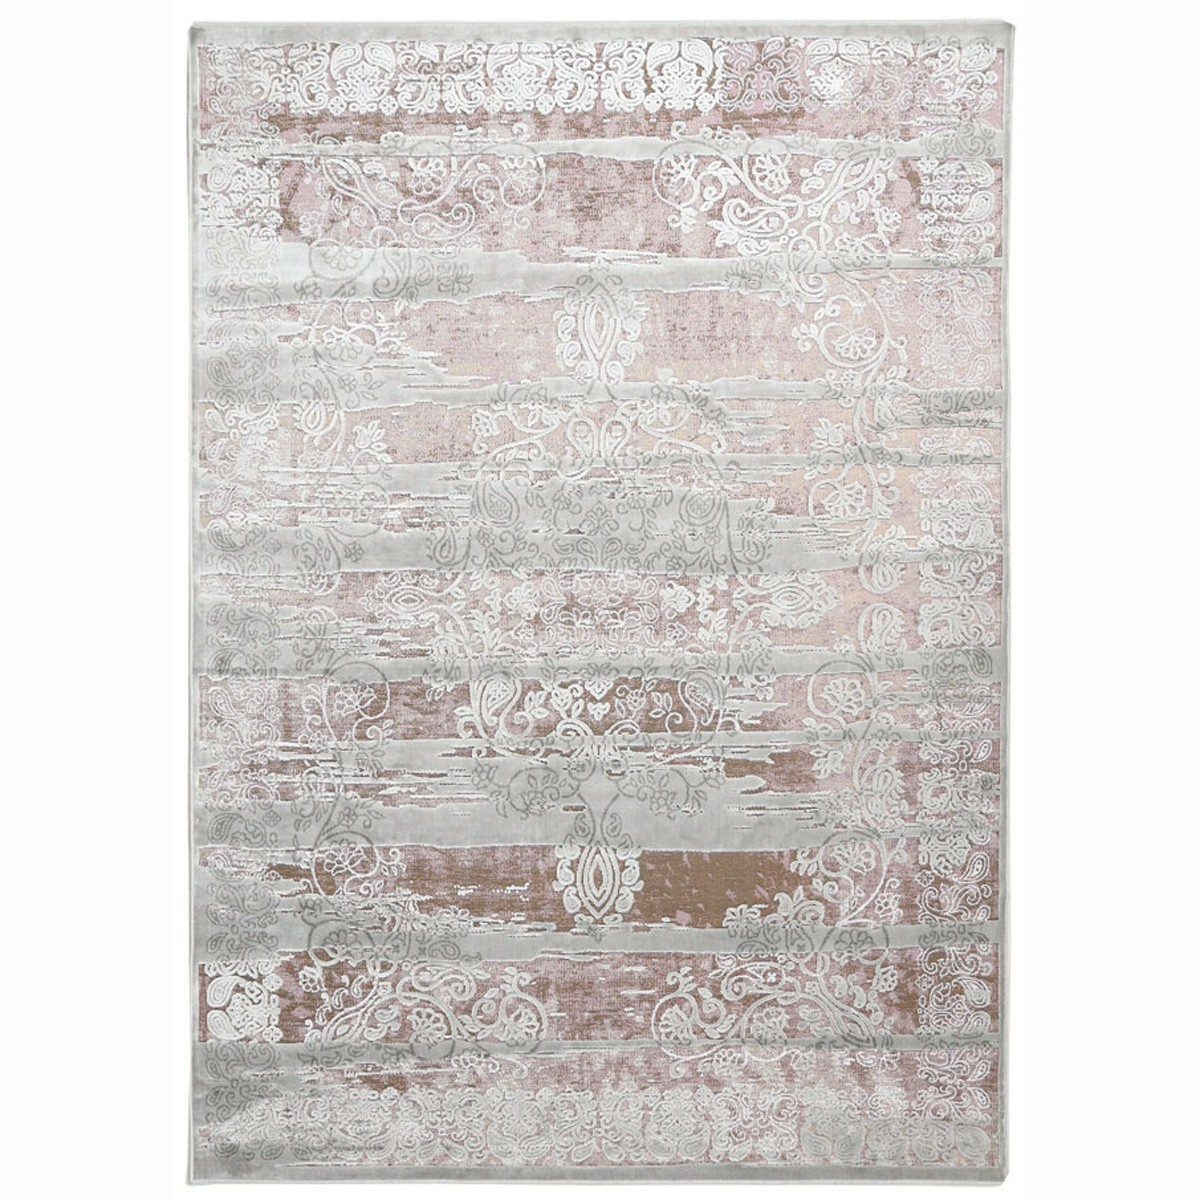 Καλοκαιρινό Χαλί (160x230) Royal Carpets Broderi G029 Silver